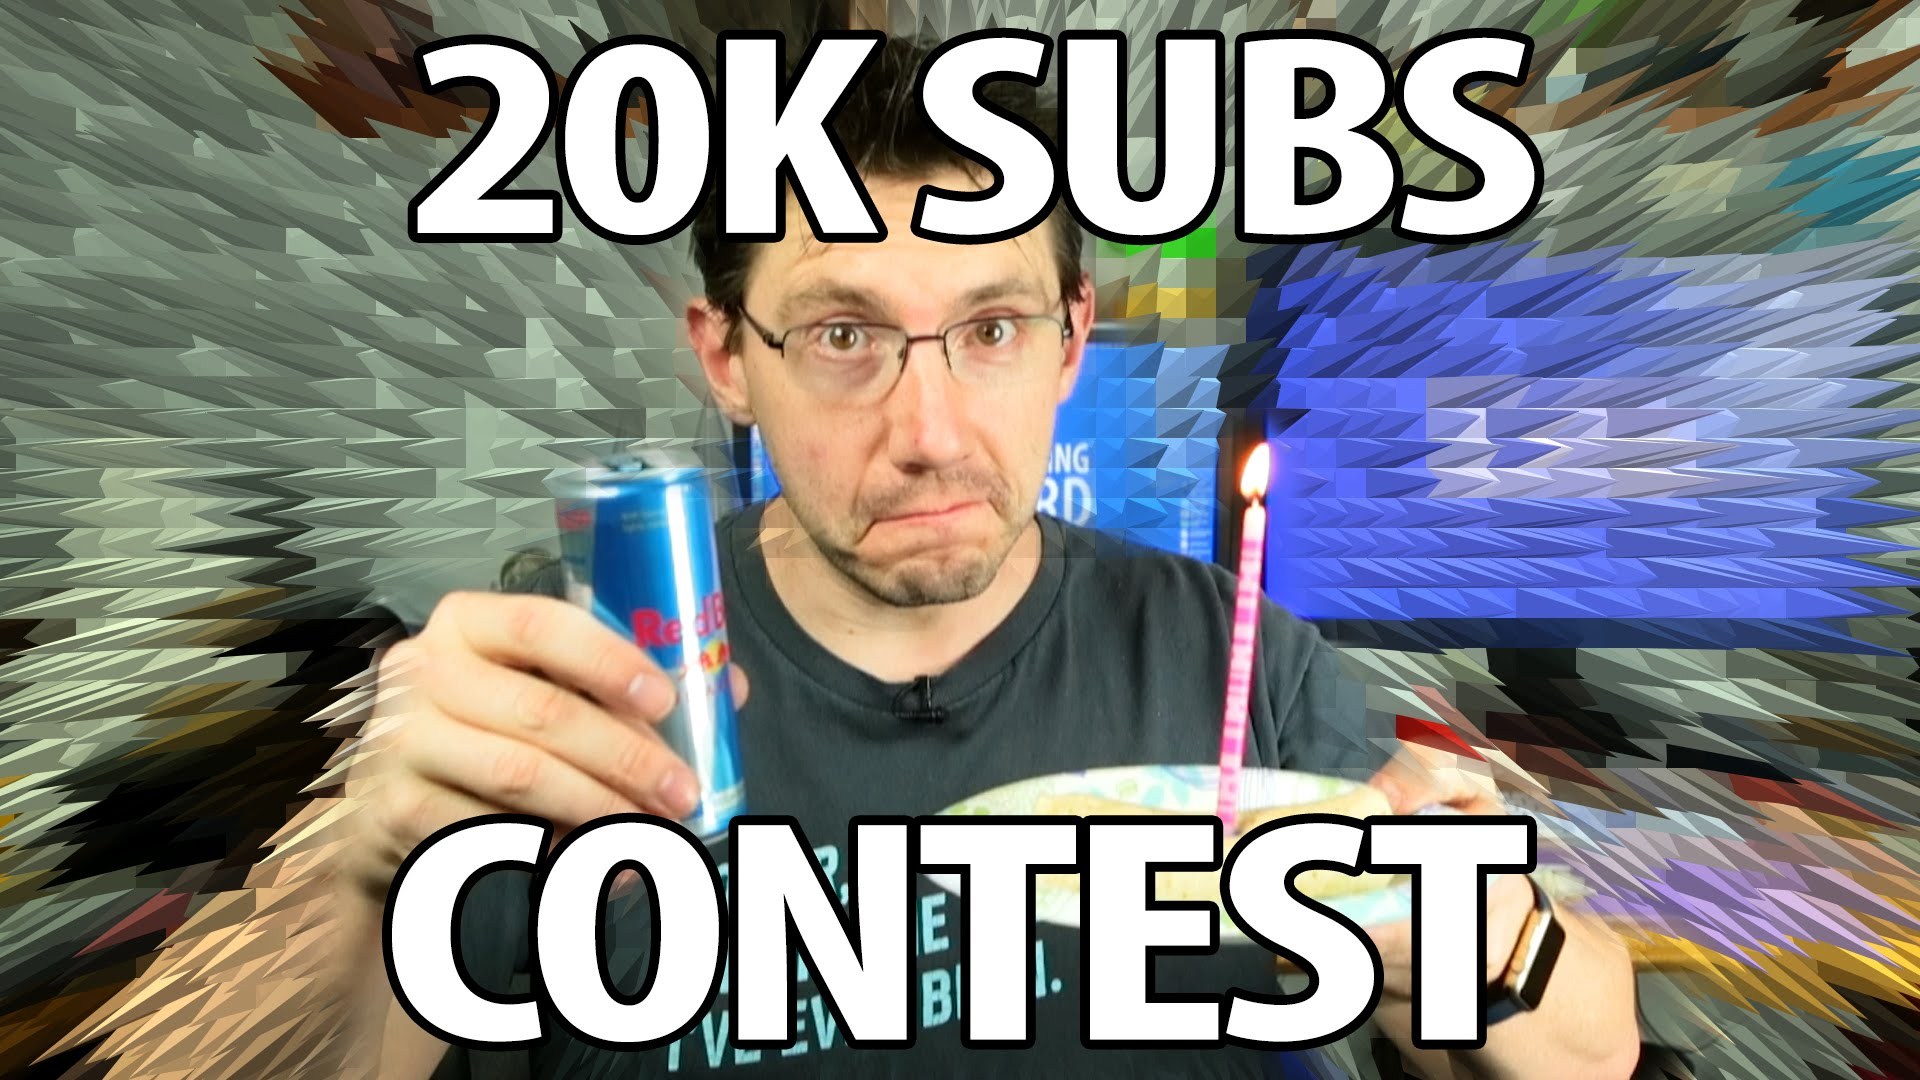 20K Subs Giveaway – Win This 3D Printer